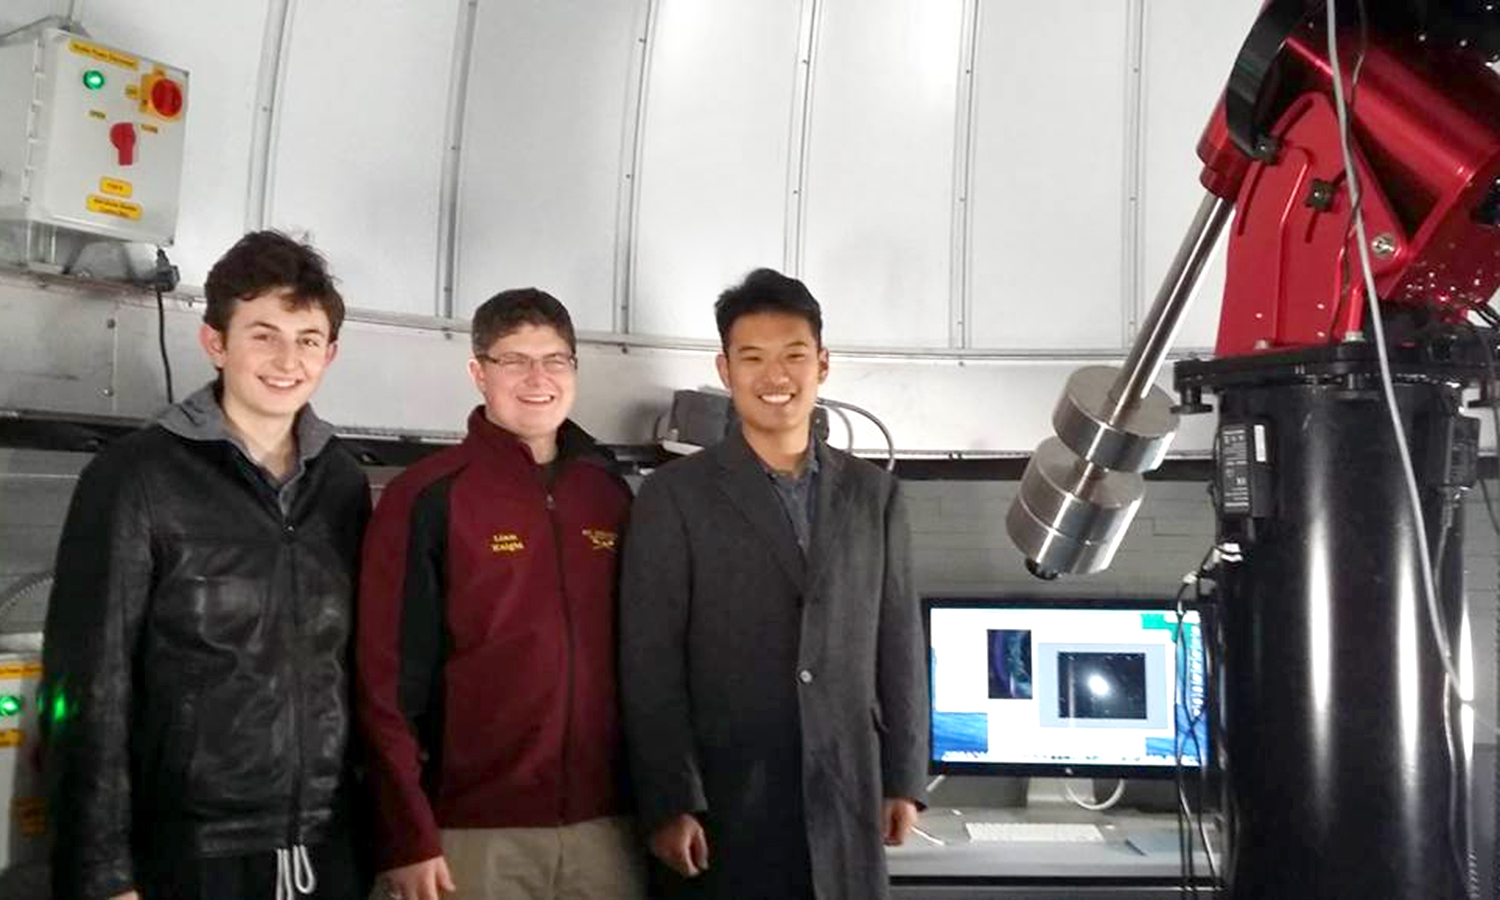 Assistant Professor of Physics Leslie Hebb captures a photo of Ben Chen 'X, Liam Knight 'X, Chris Lucore 'X while they observe the Andromeda Galaxy using the telescope's digital camera in the Richard S. Perkin Observatory.